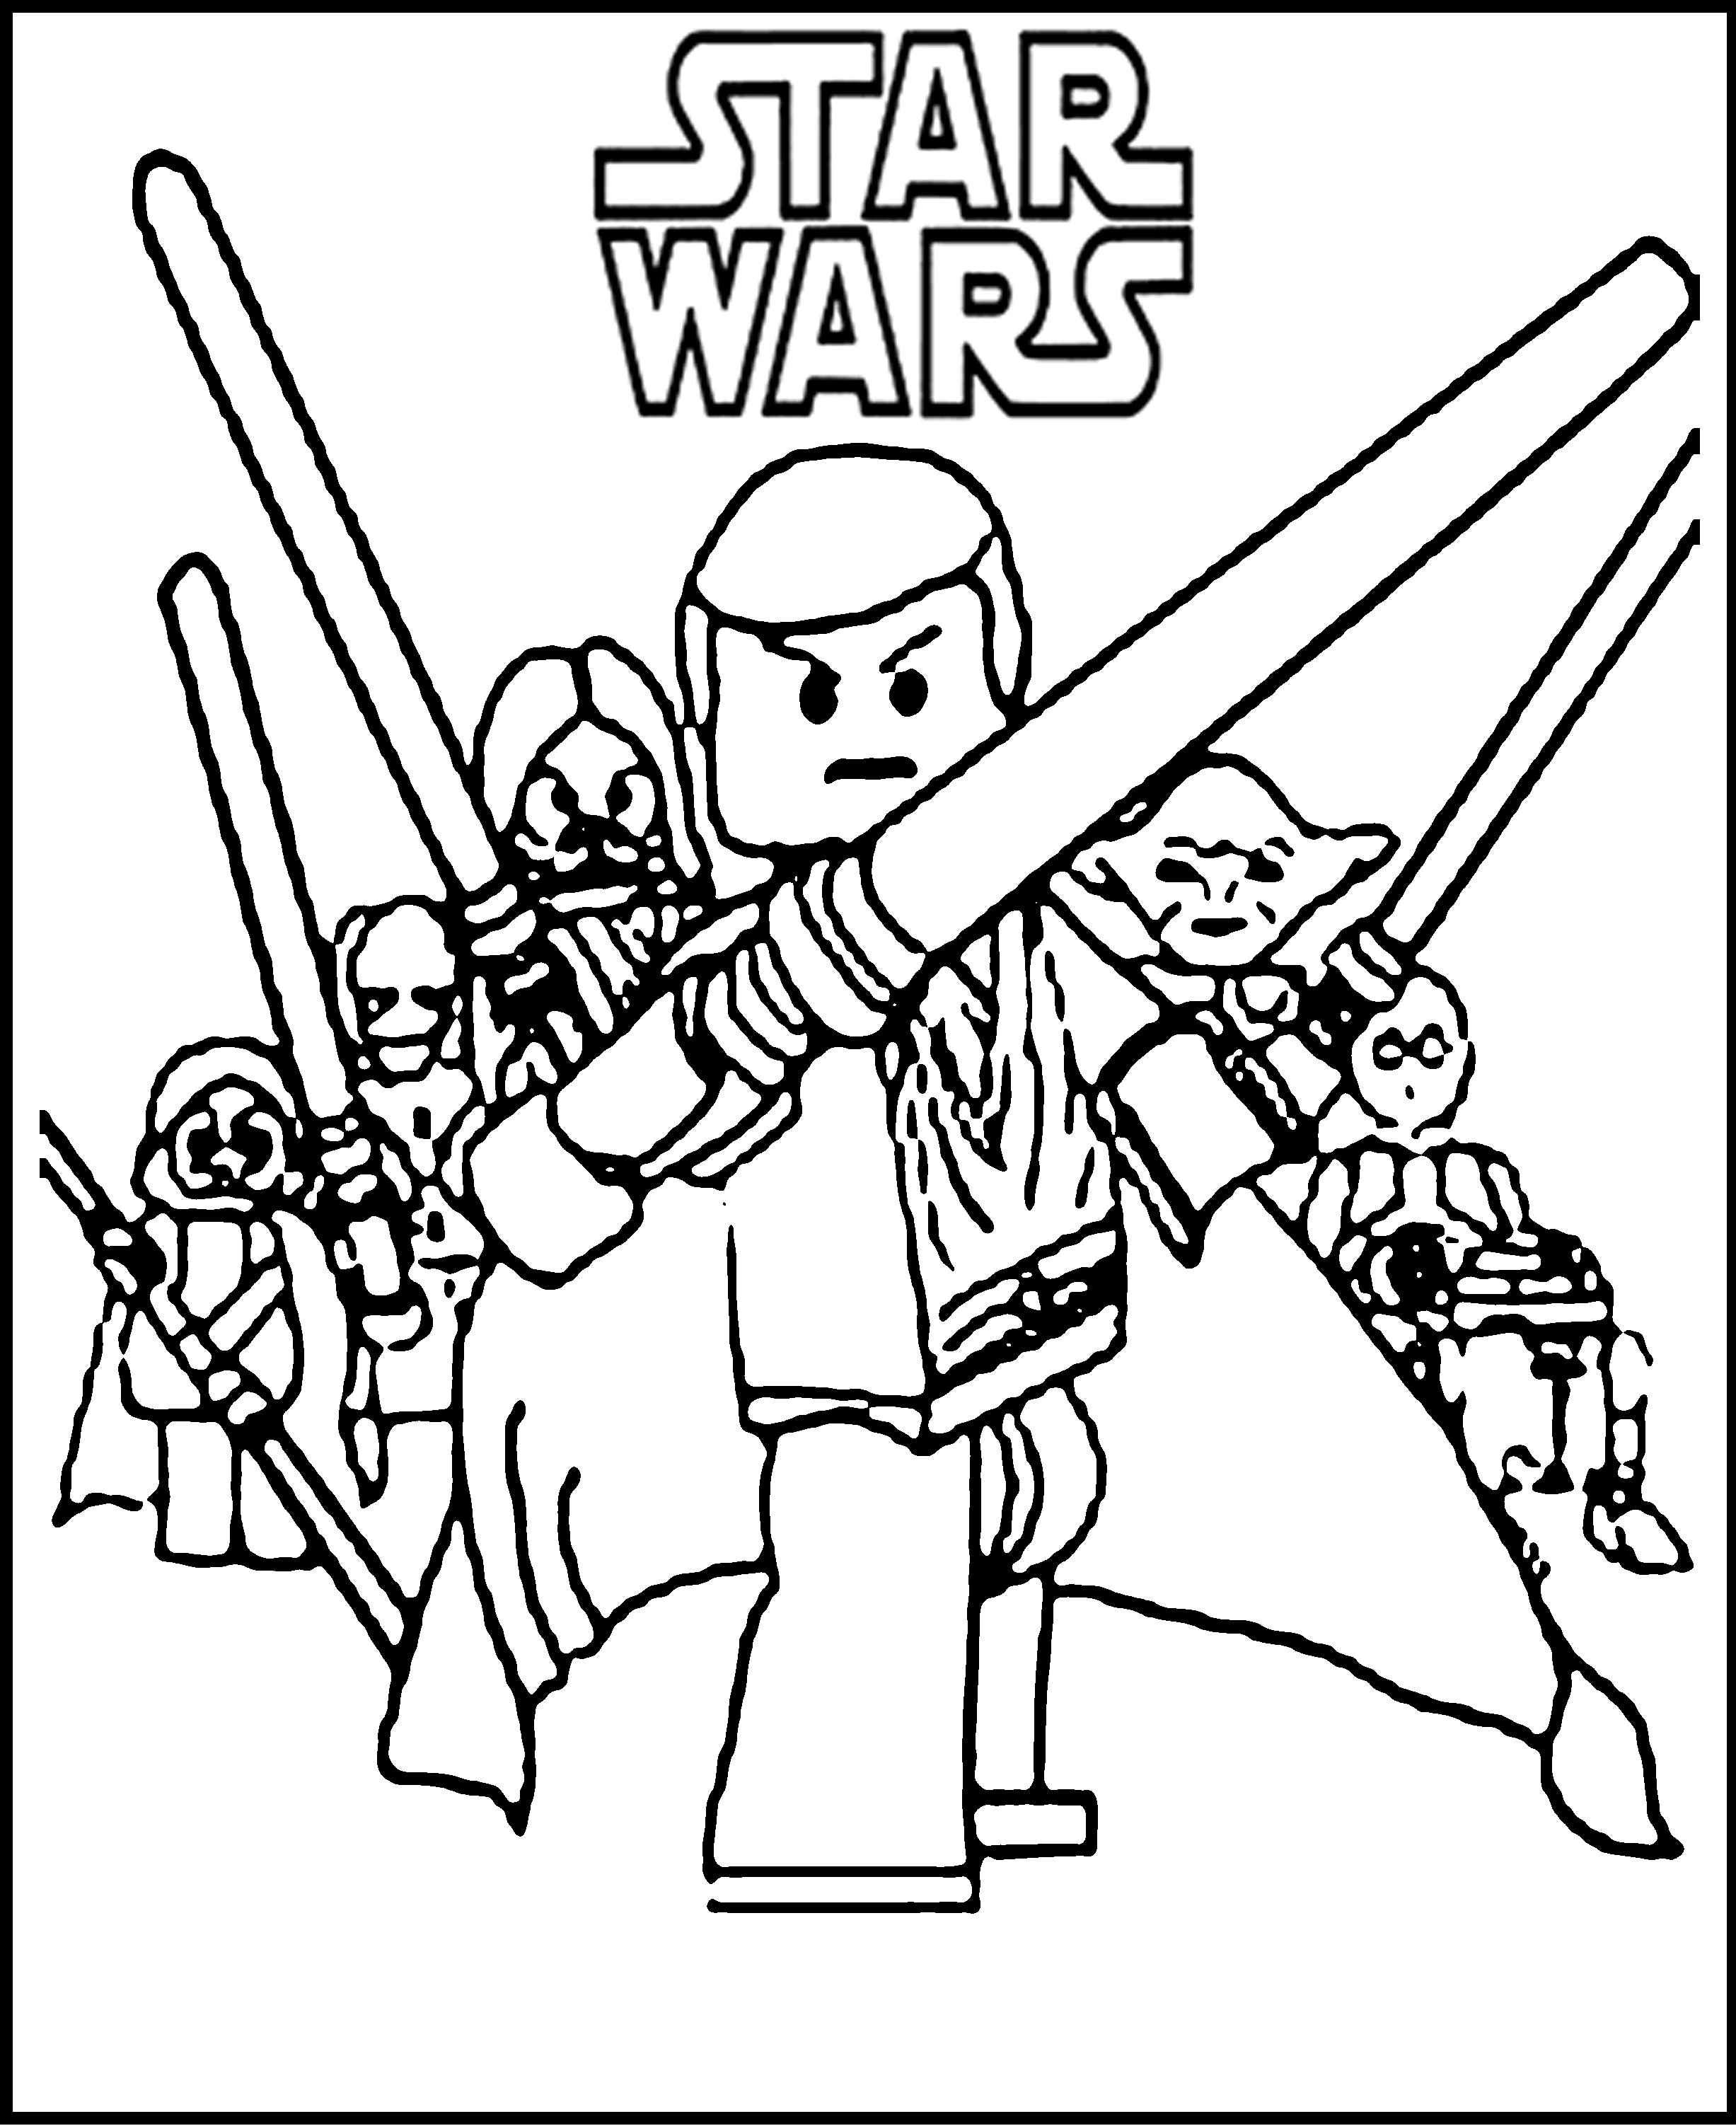 coloring pages star wars 50 top star wars coloring pages online free wars coloring pages star